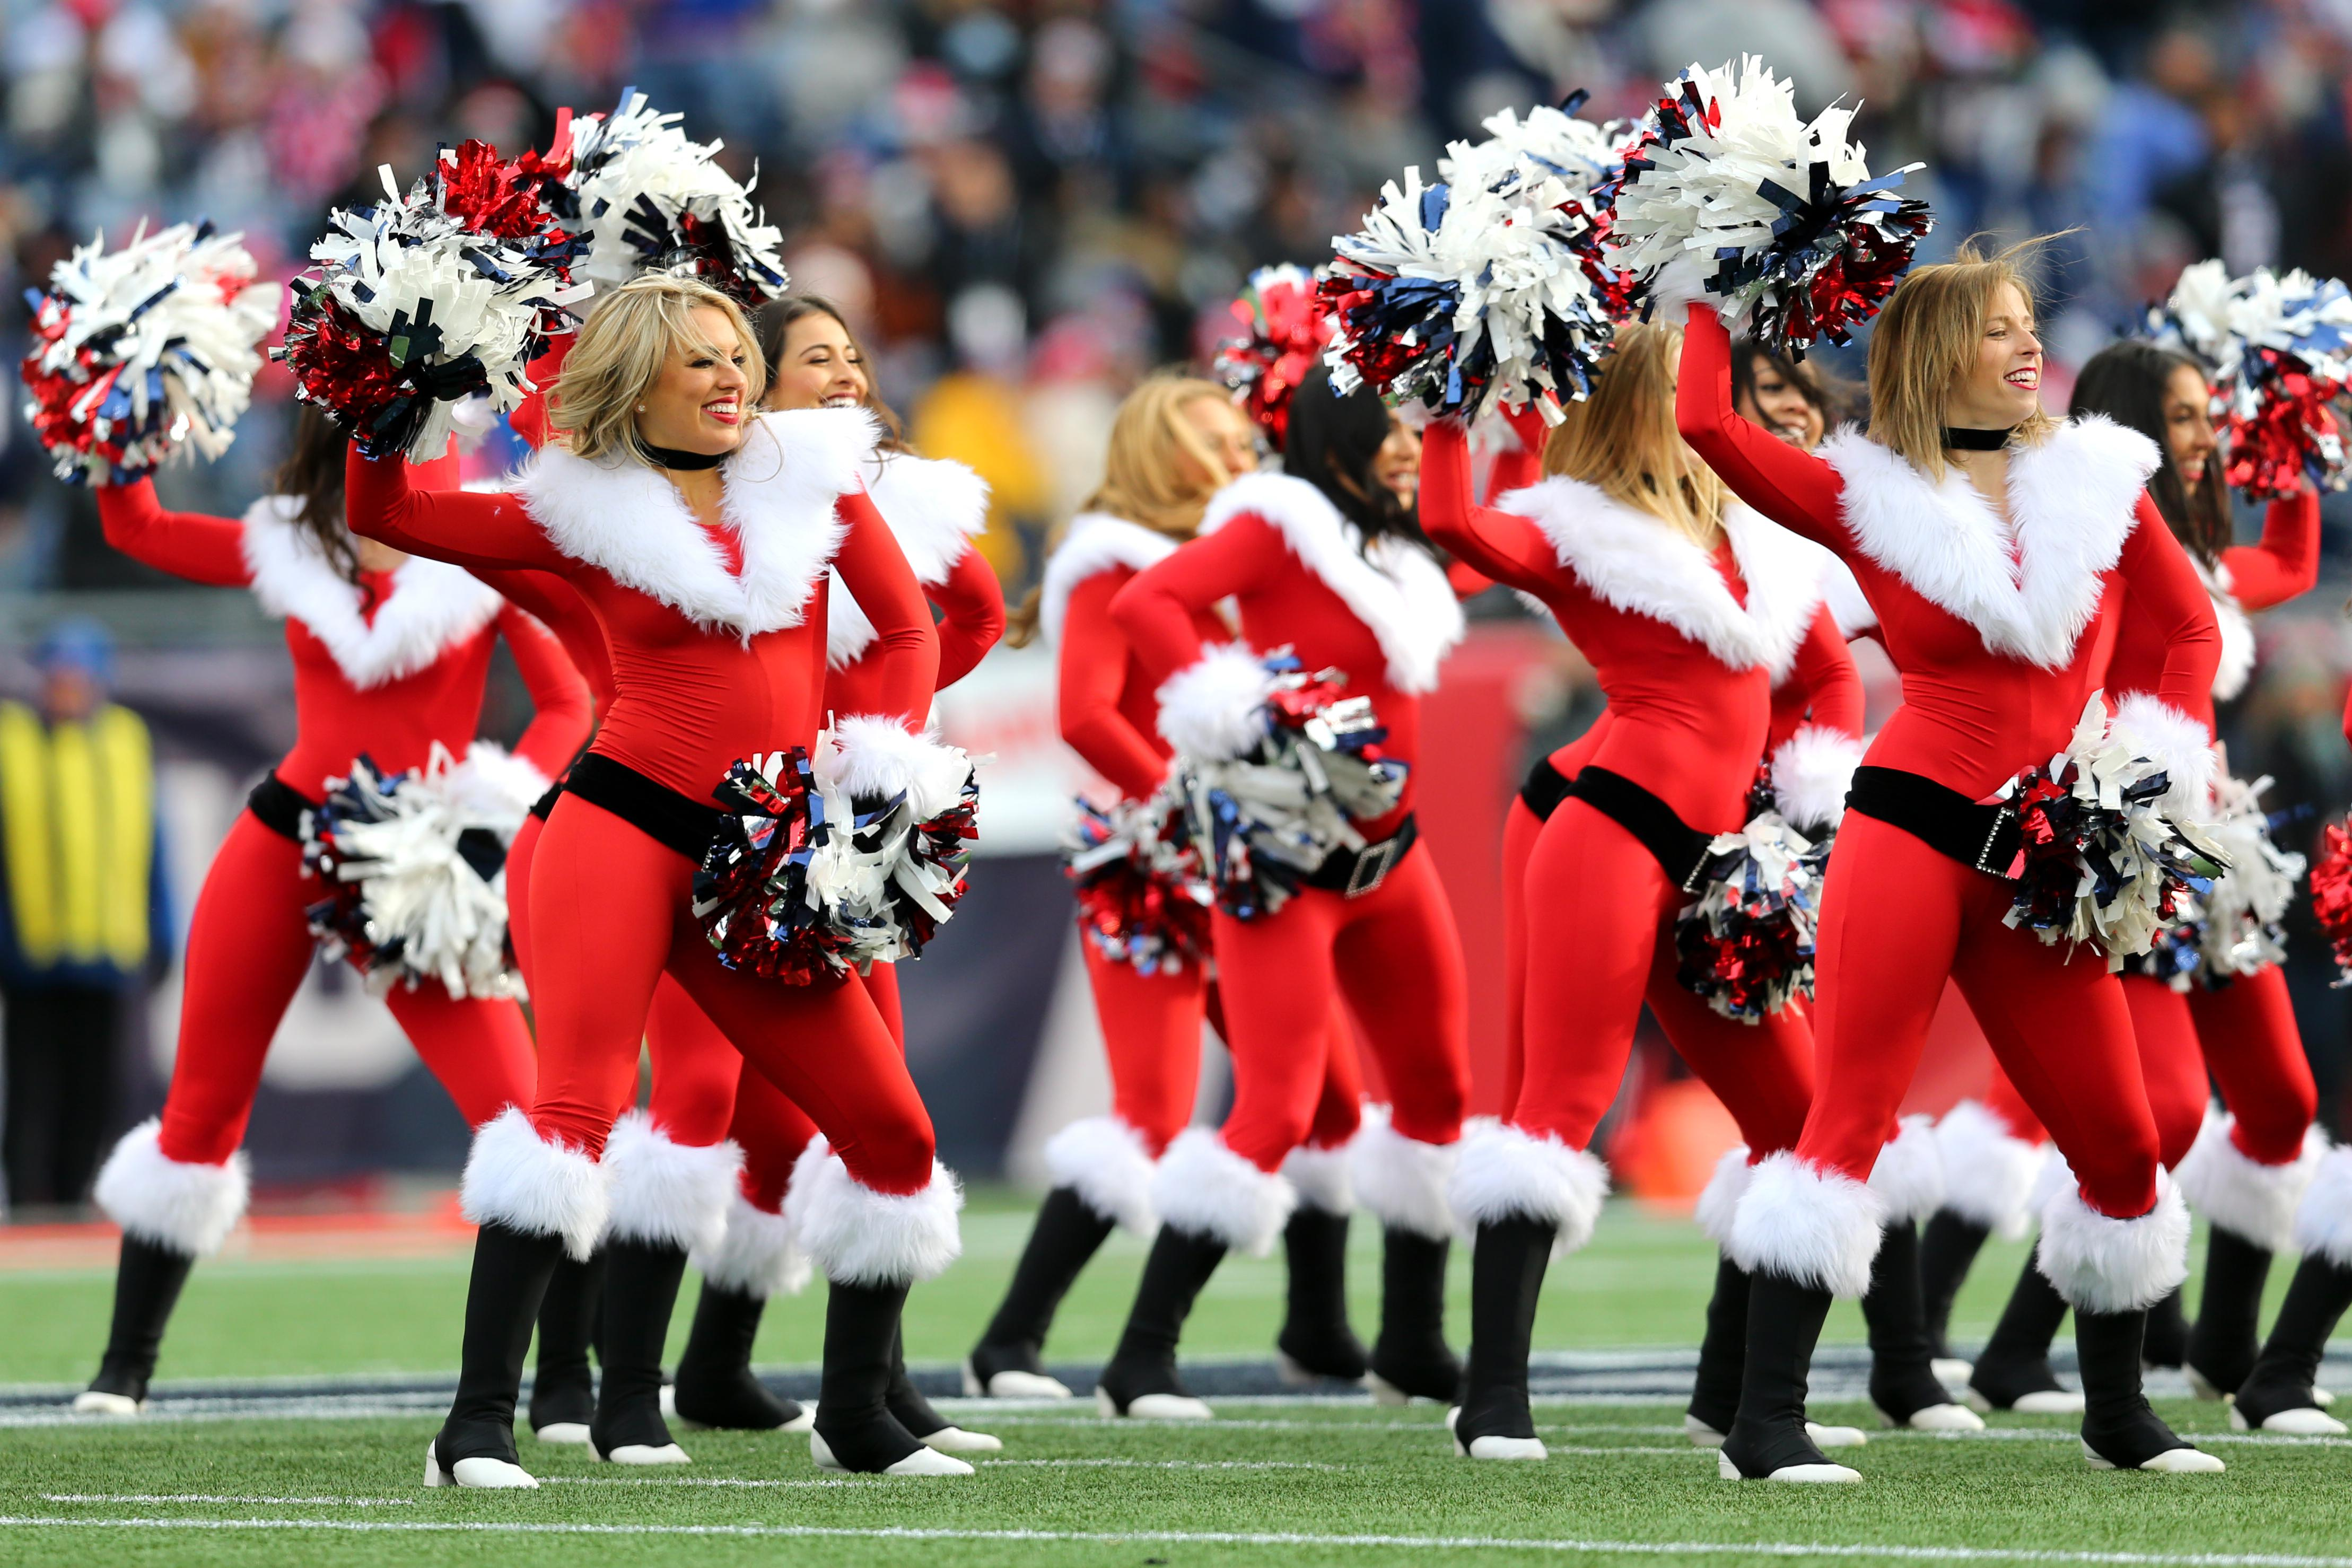 Patriots cheerleaders dressed up in Christmas outfits